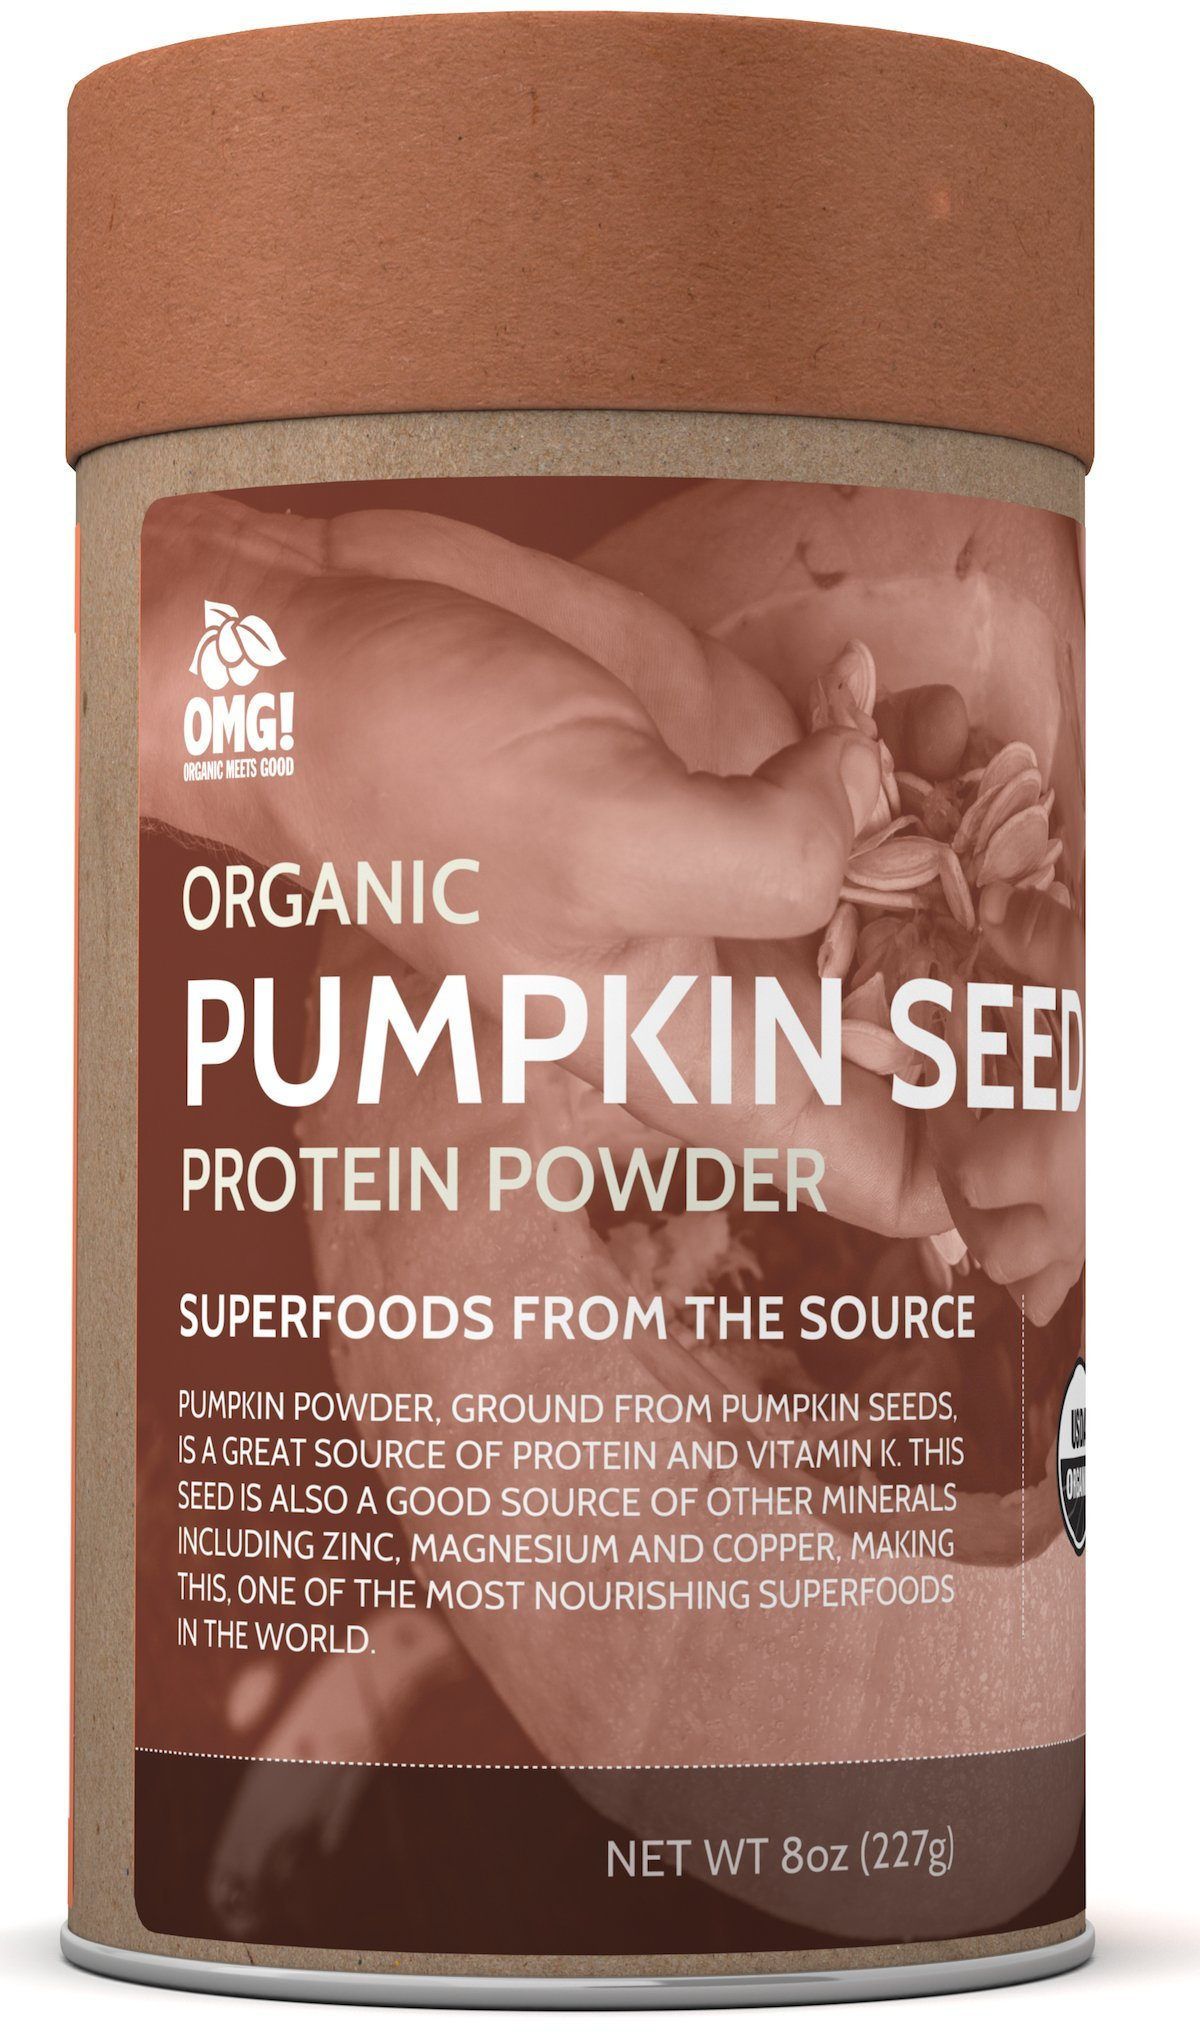 OMG! Superfoods Organic Pumpkin Seed Powder - 100% Pure, USDA Certified Organic Pumpkin Seed Powder - 8oz by OMG! Organic Meets Good